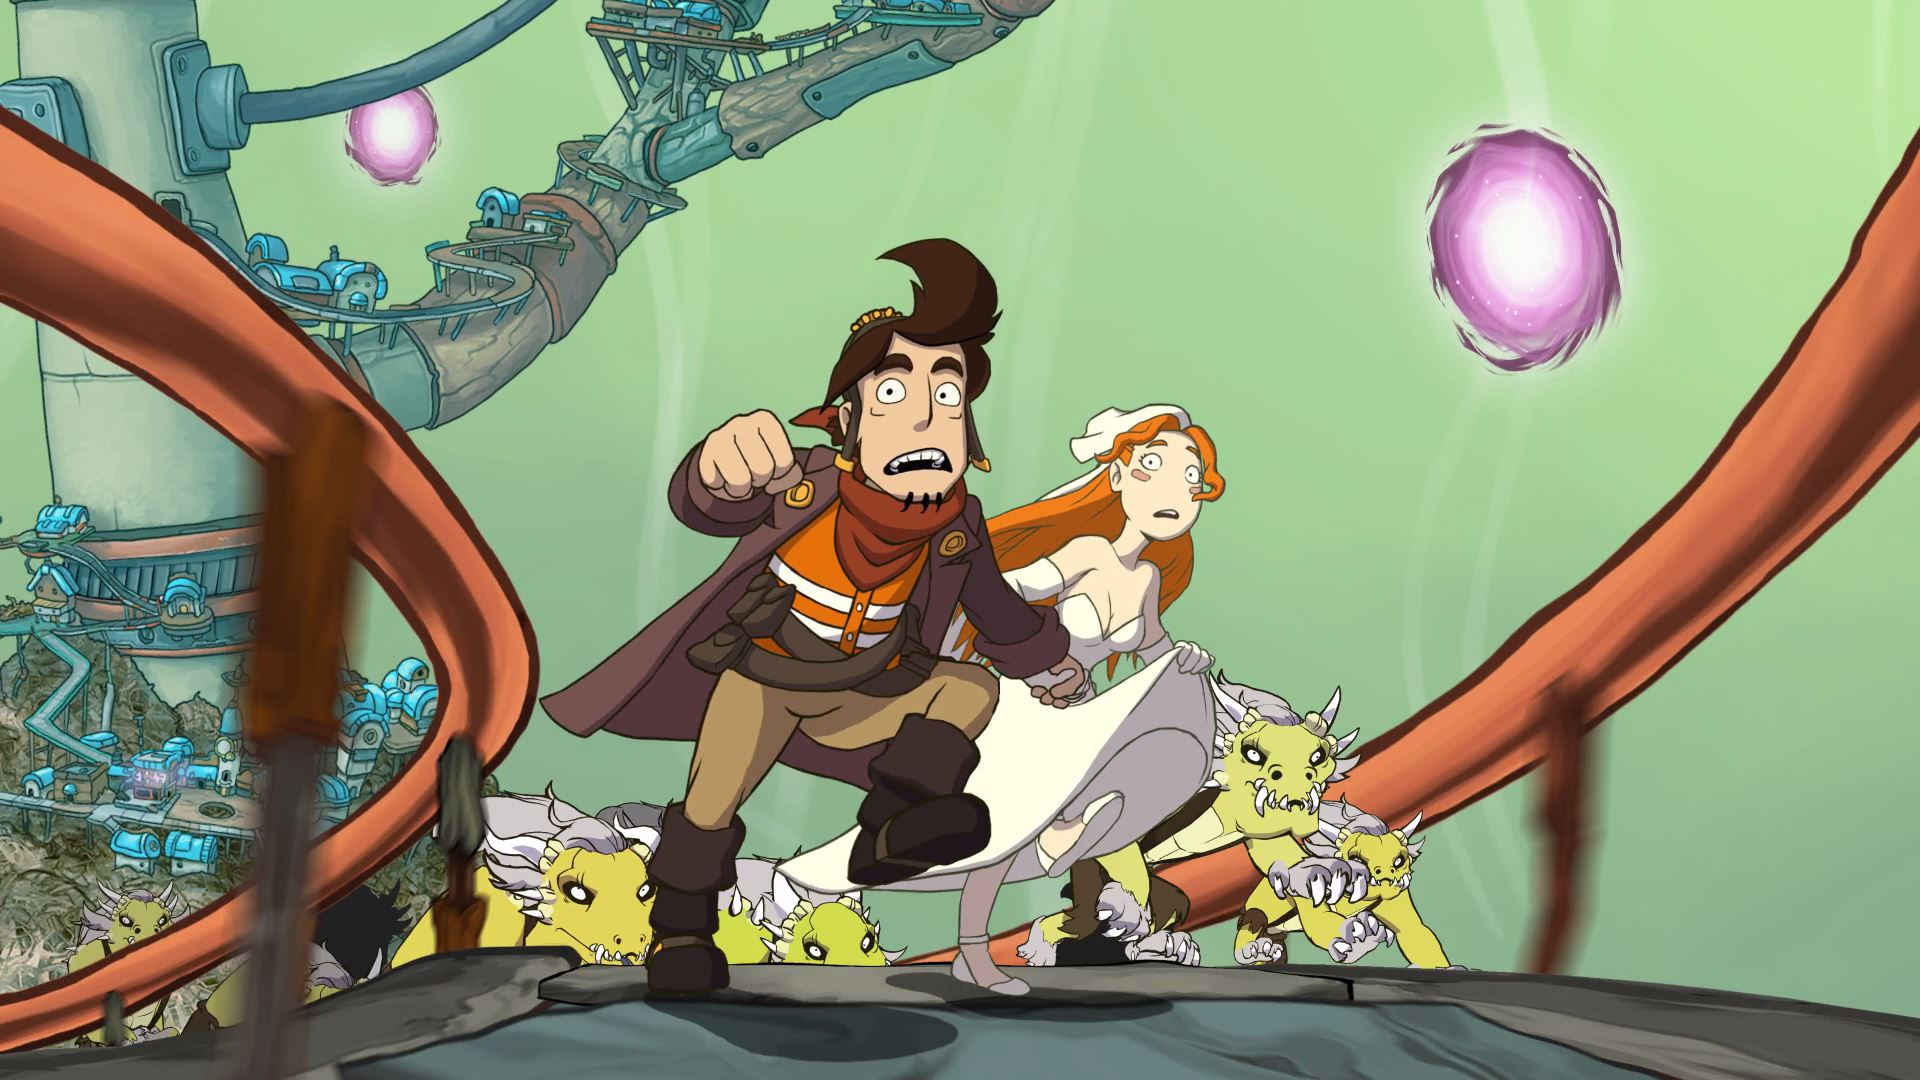 nat games deponia doomsday 3